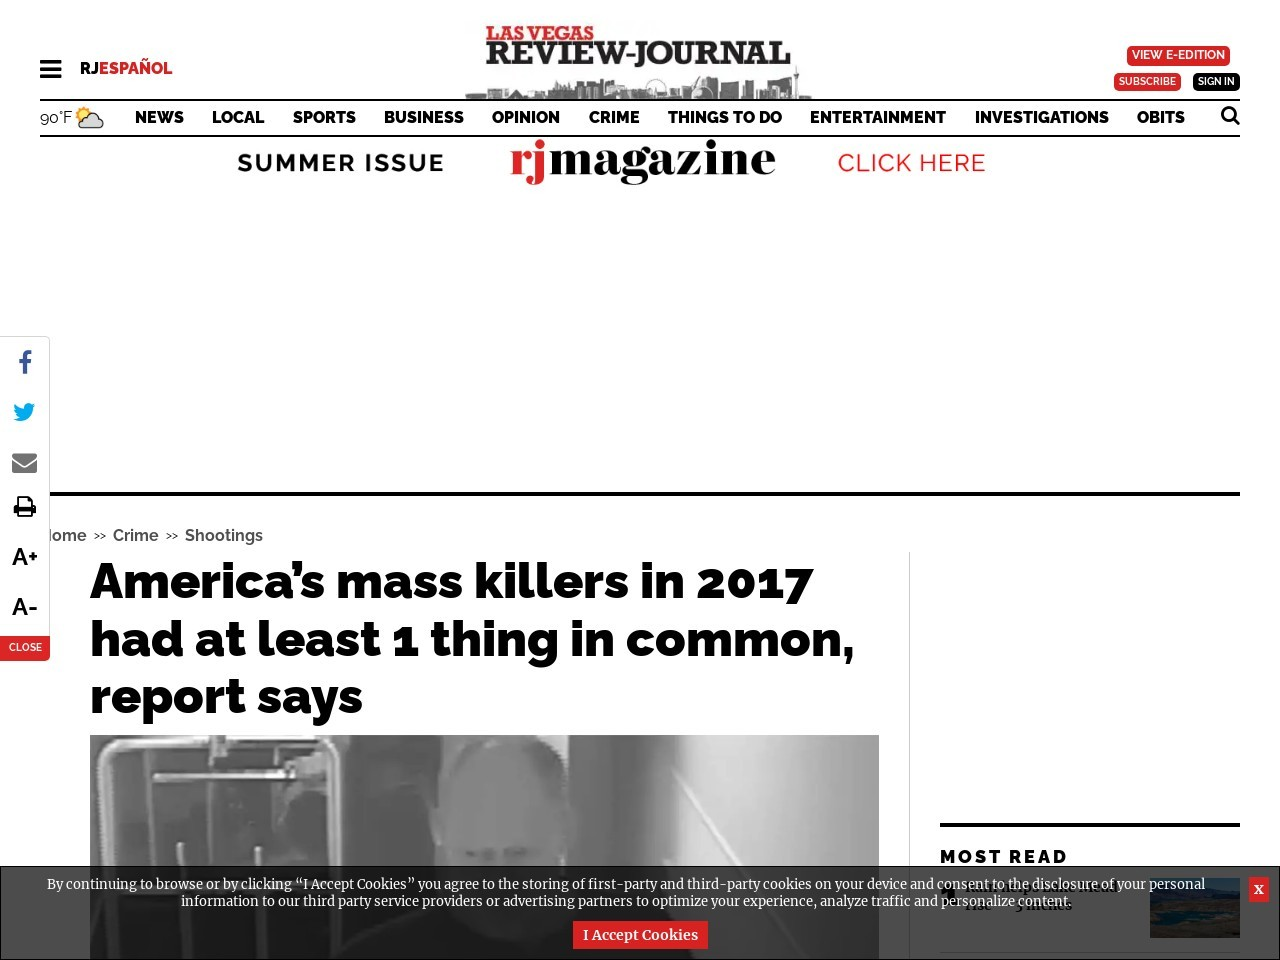 America's mass killers in 2017 had at least 1 thing in common, report says